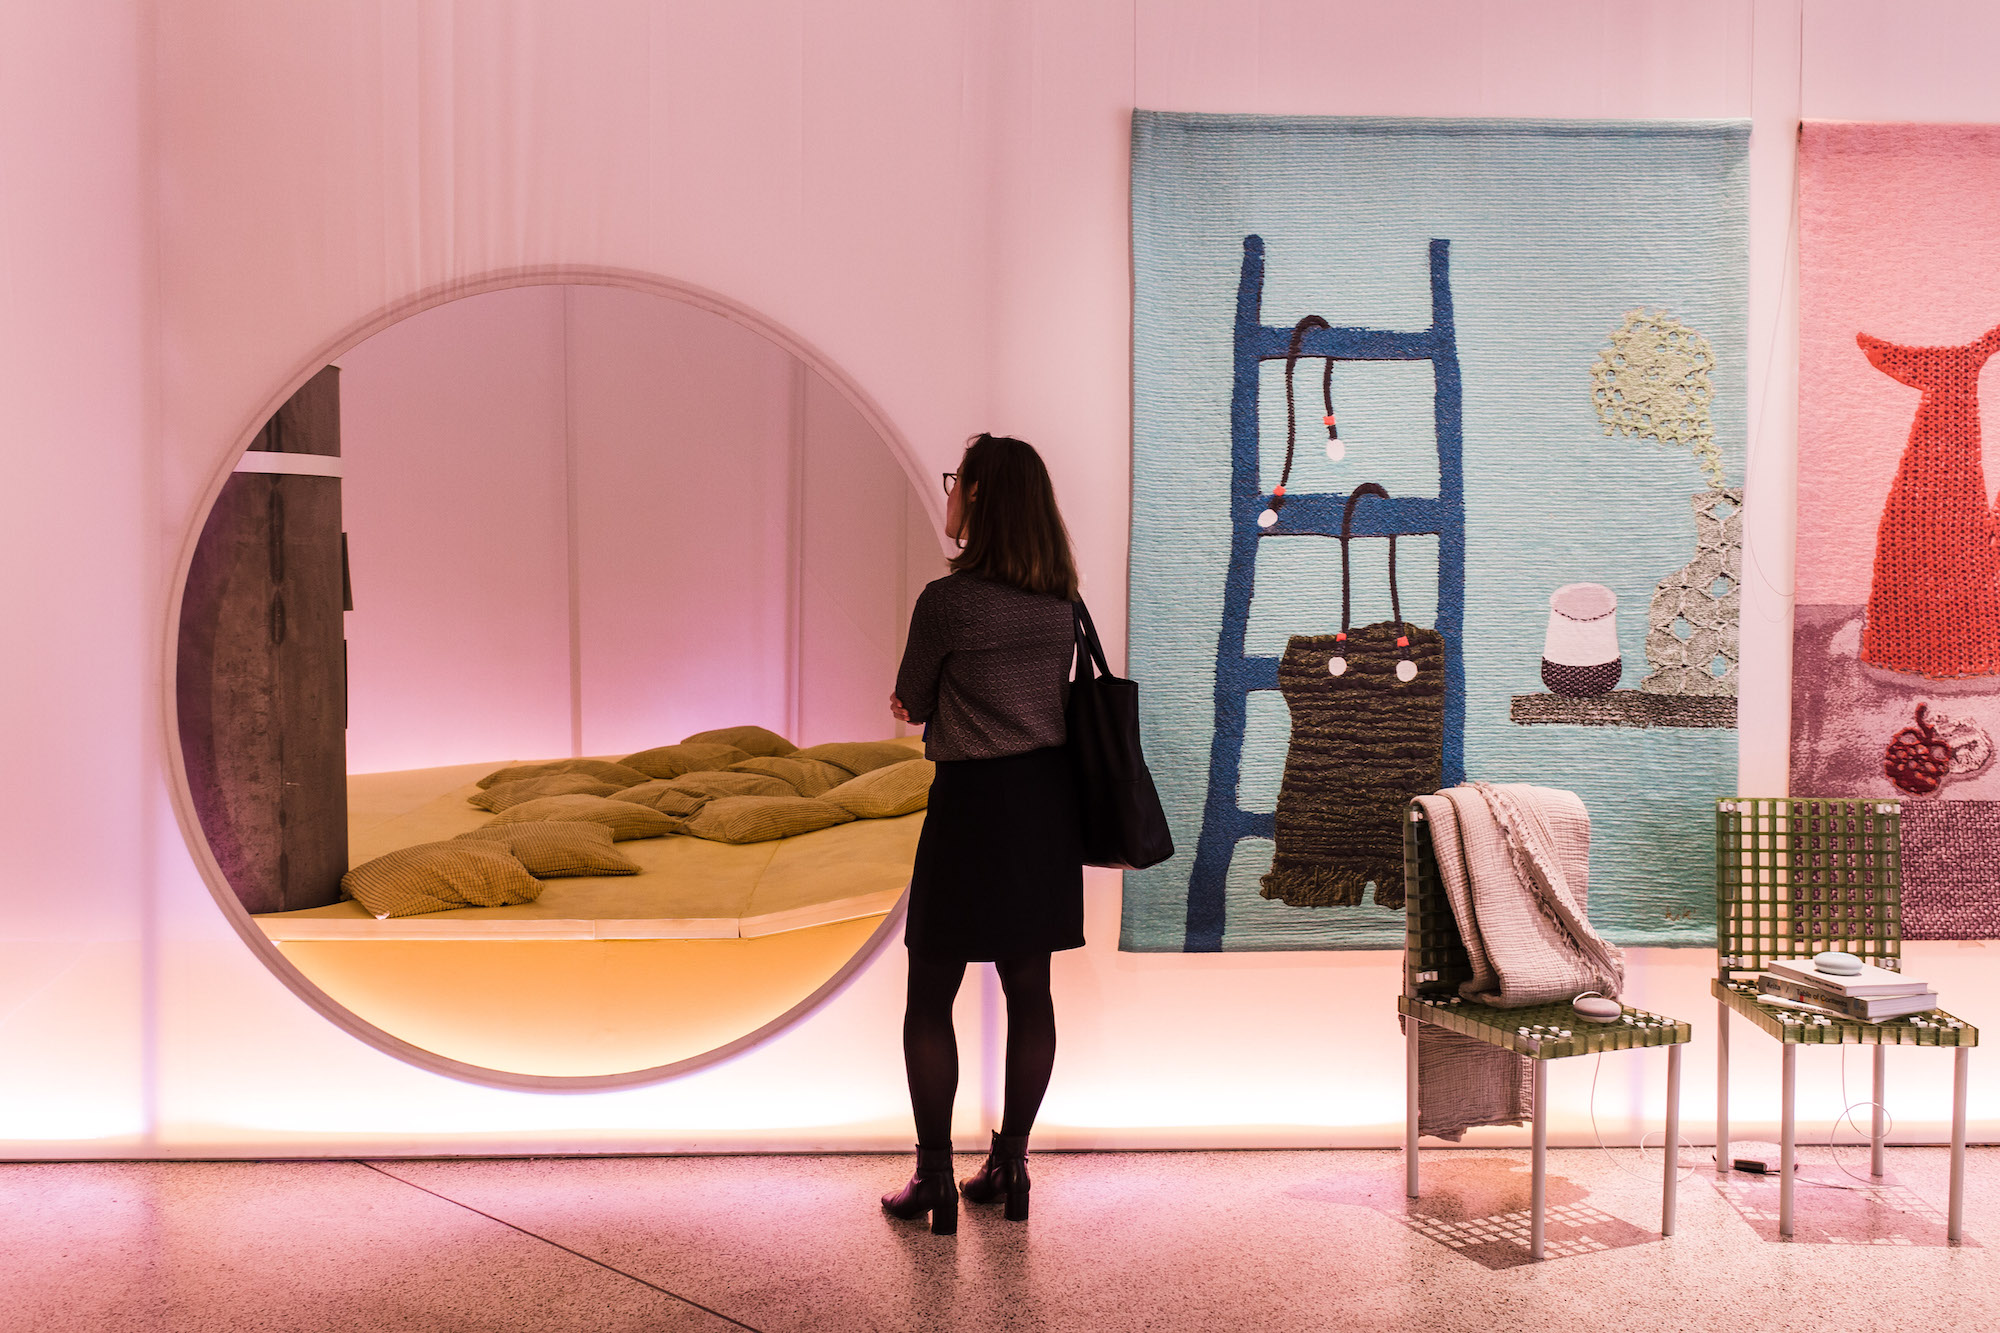 One Shared House 2030 at London Design Museum – SPACE10